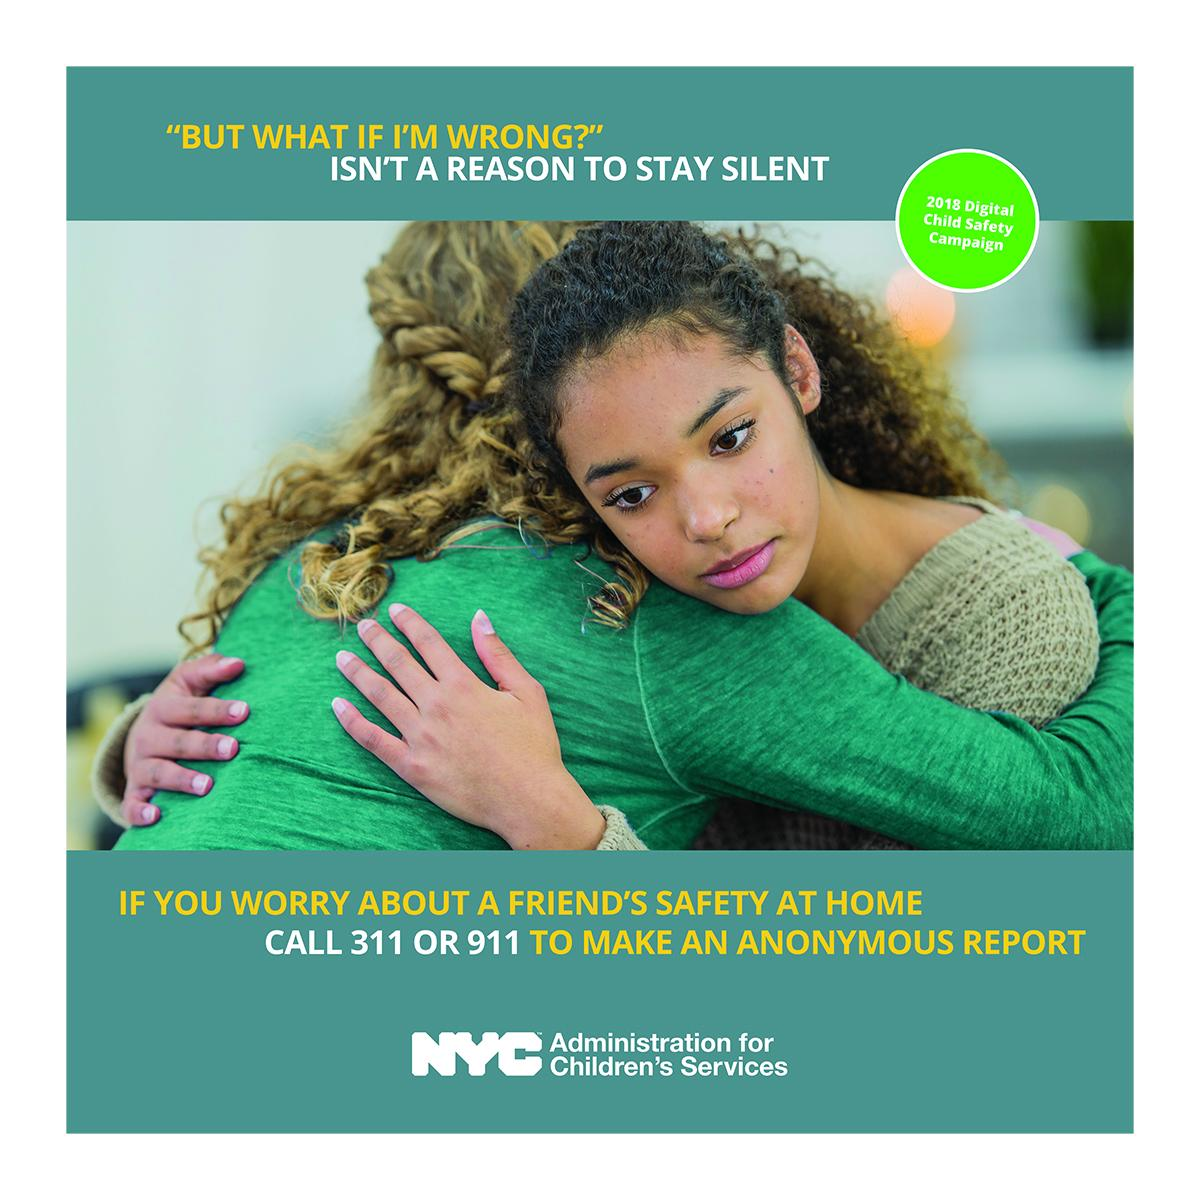 Child Safety Ad Campaign Sparks Concerns Wnyc News Wnyc